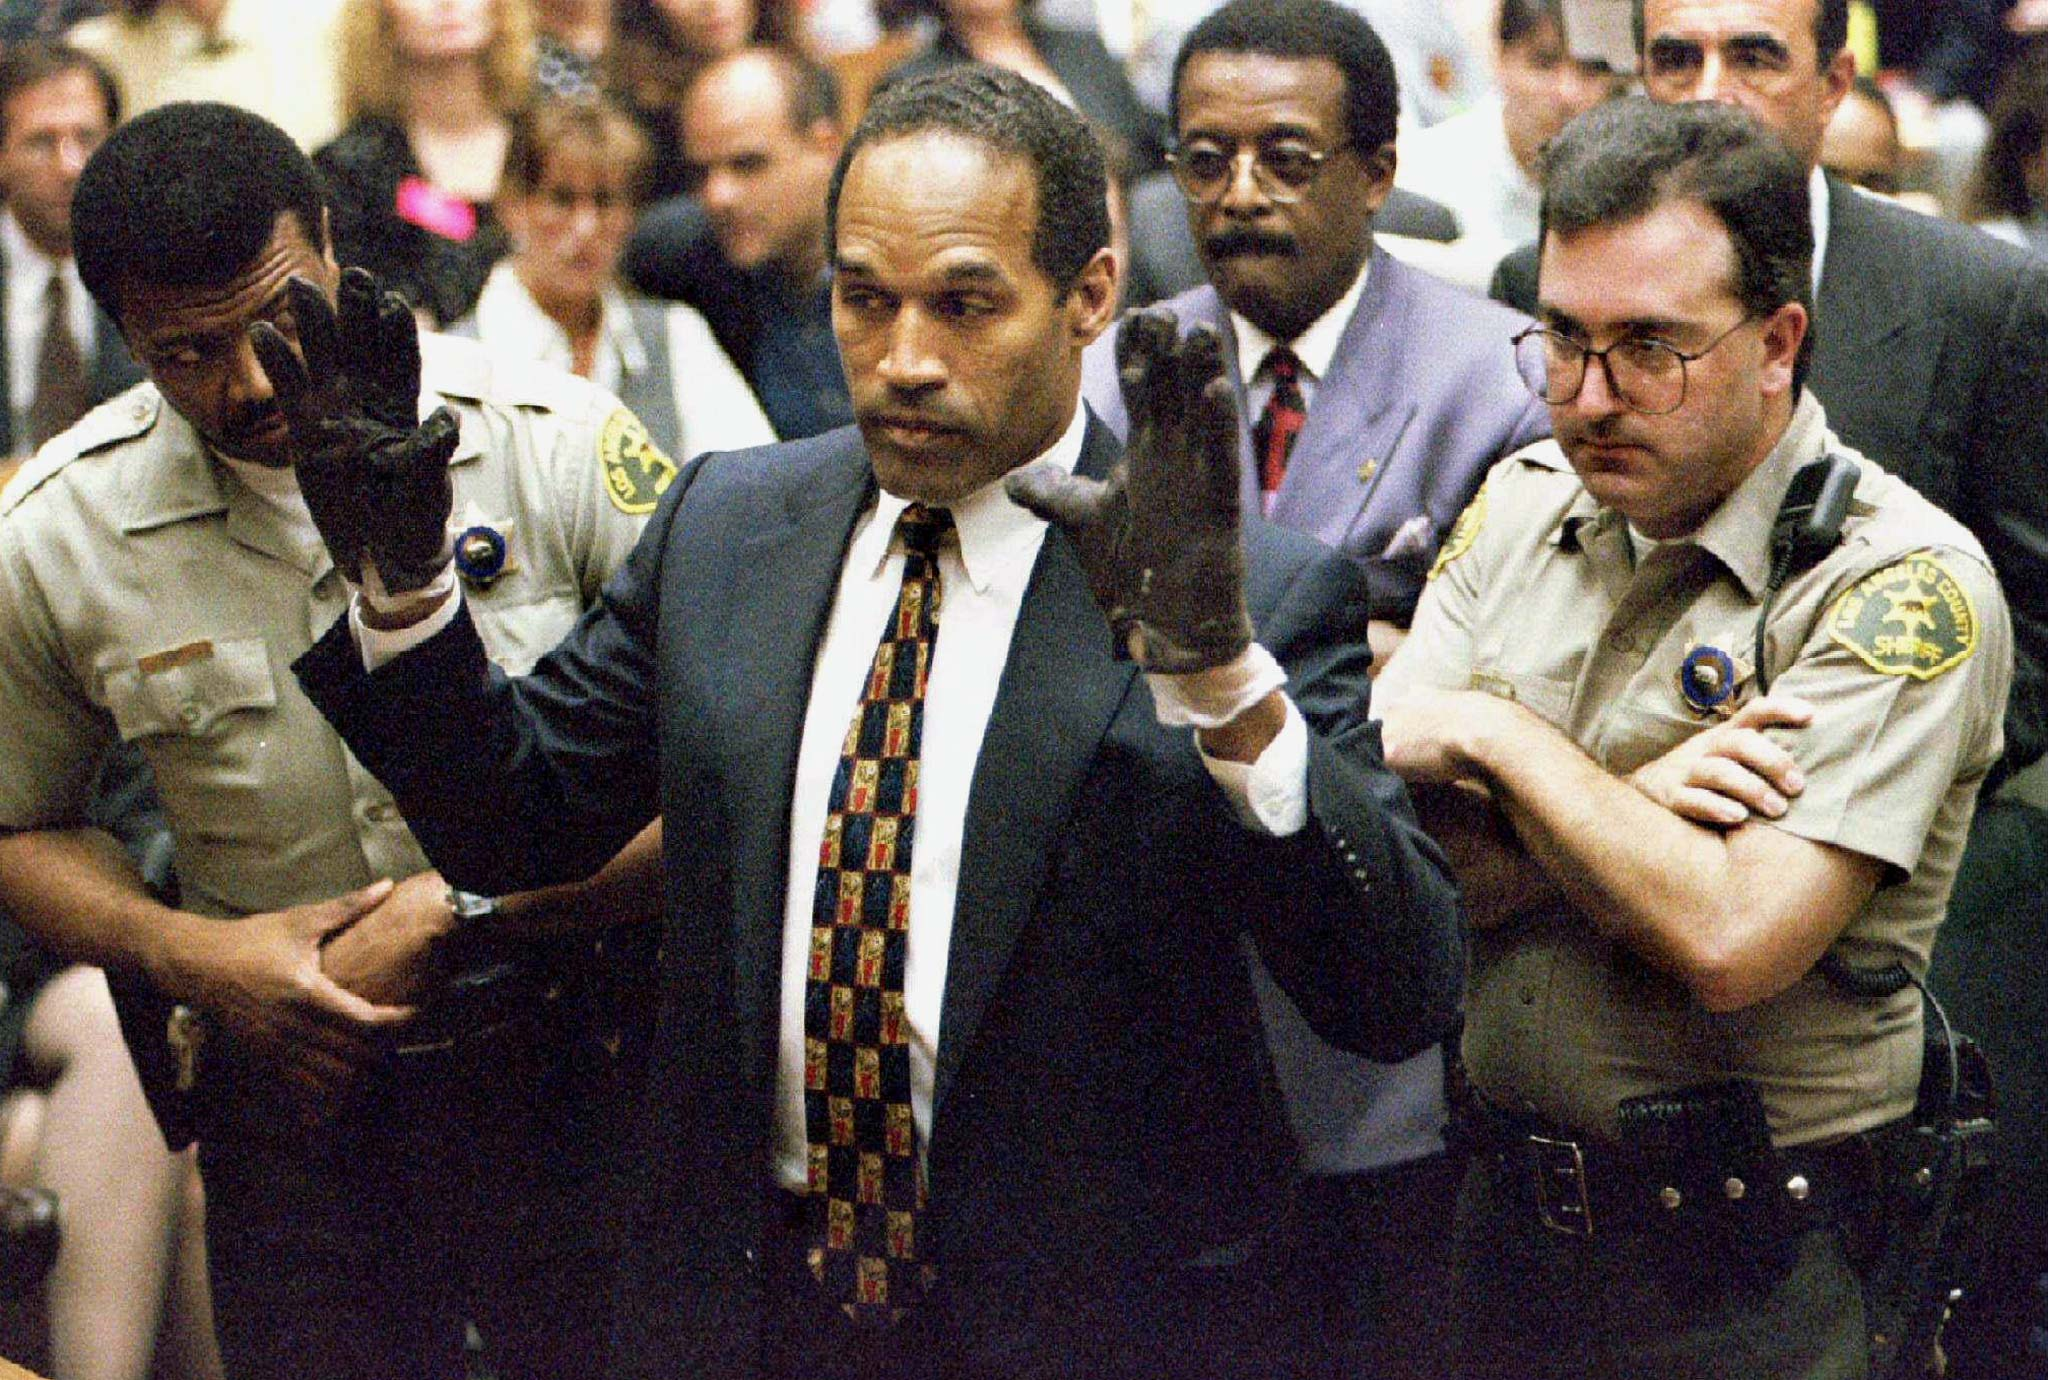 FILE PHOTO OF O.J. SIMPSON